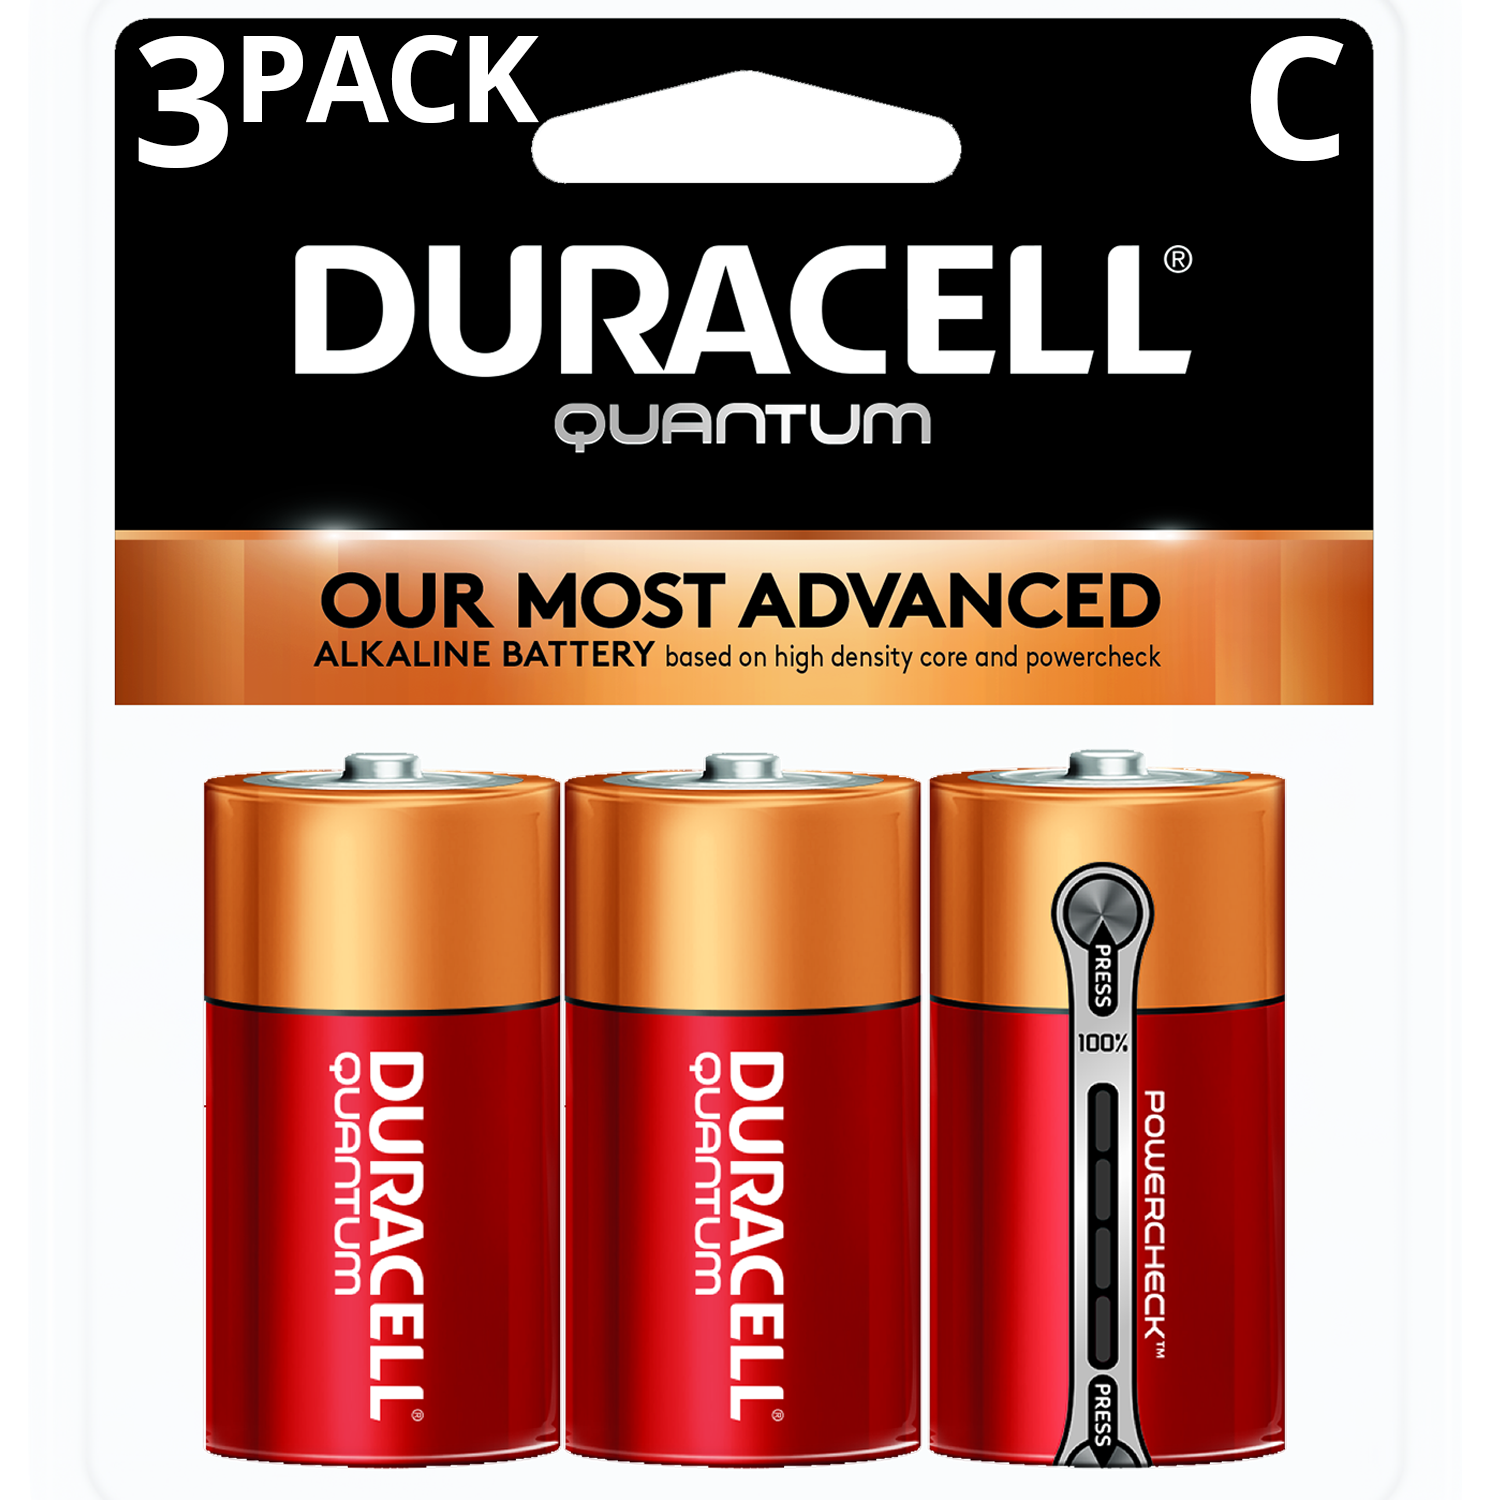 Duracell 1.5V Quantum Alkaline C Batteries with PowerCheck 3 Pack